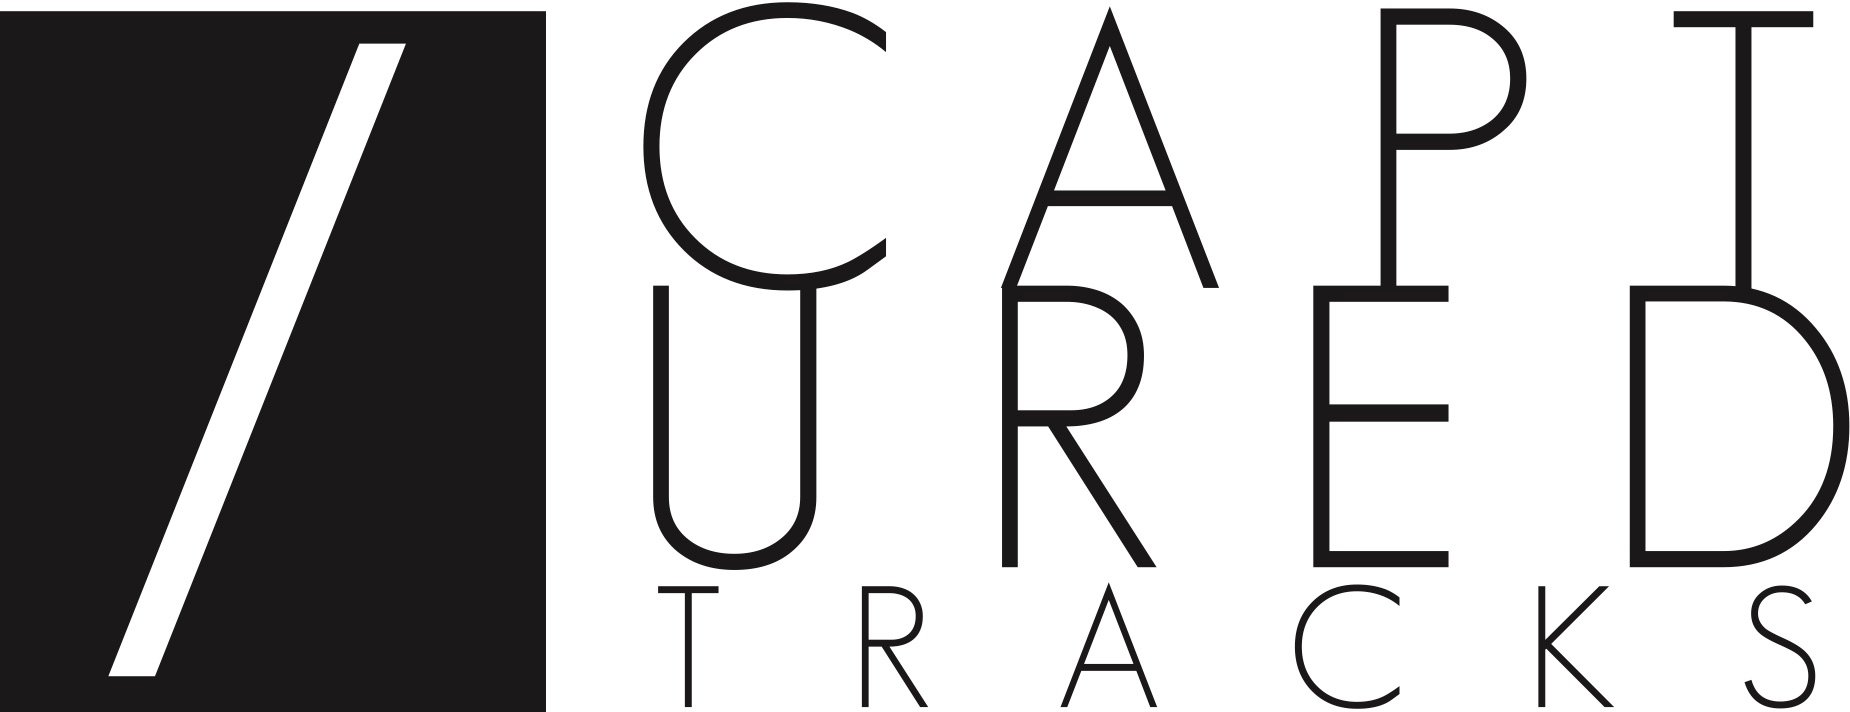 Capturedtracks logohorizontal black good